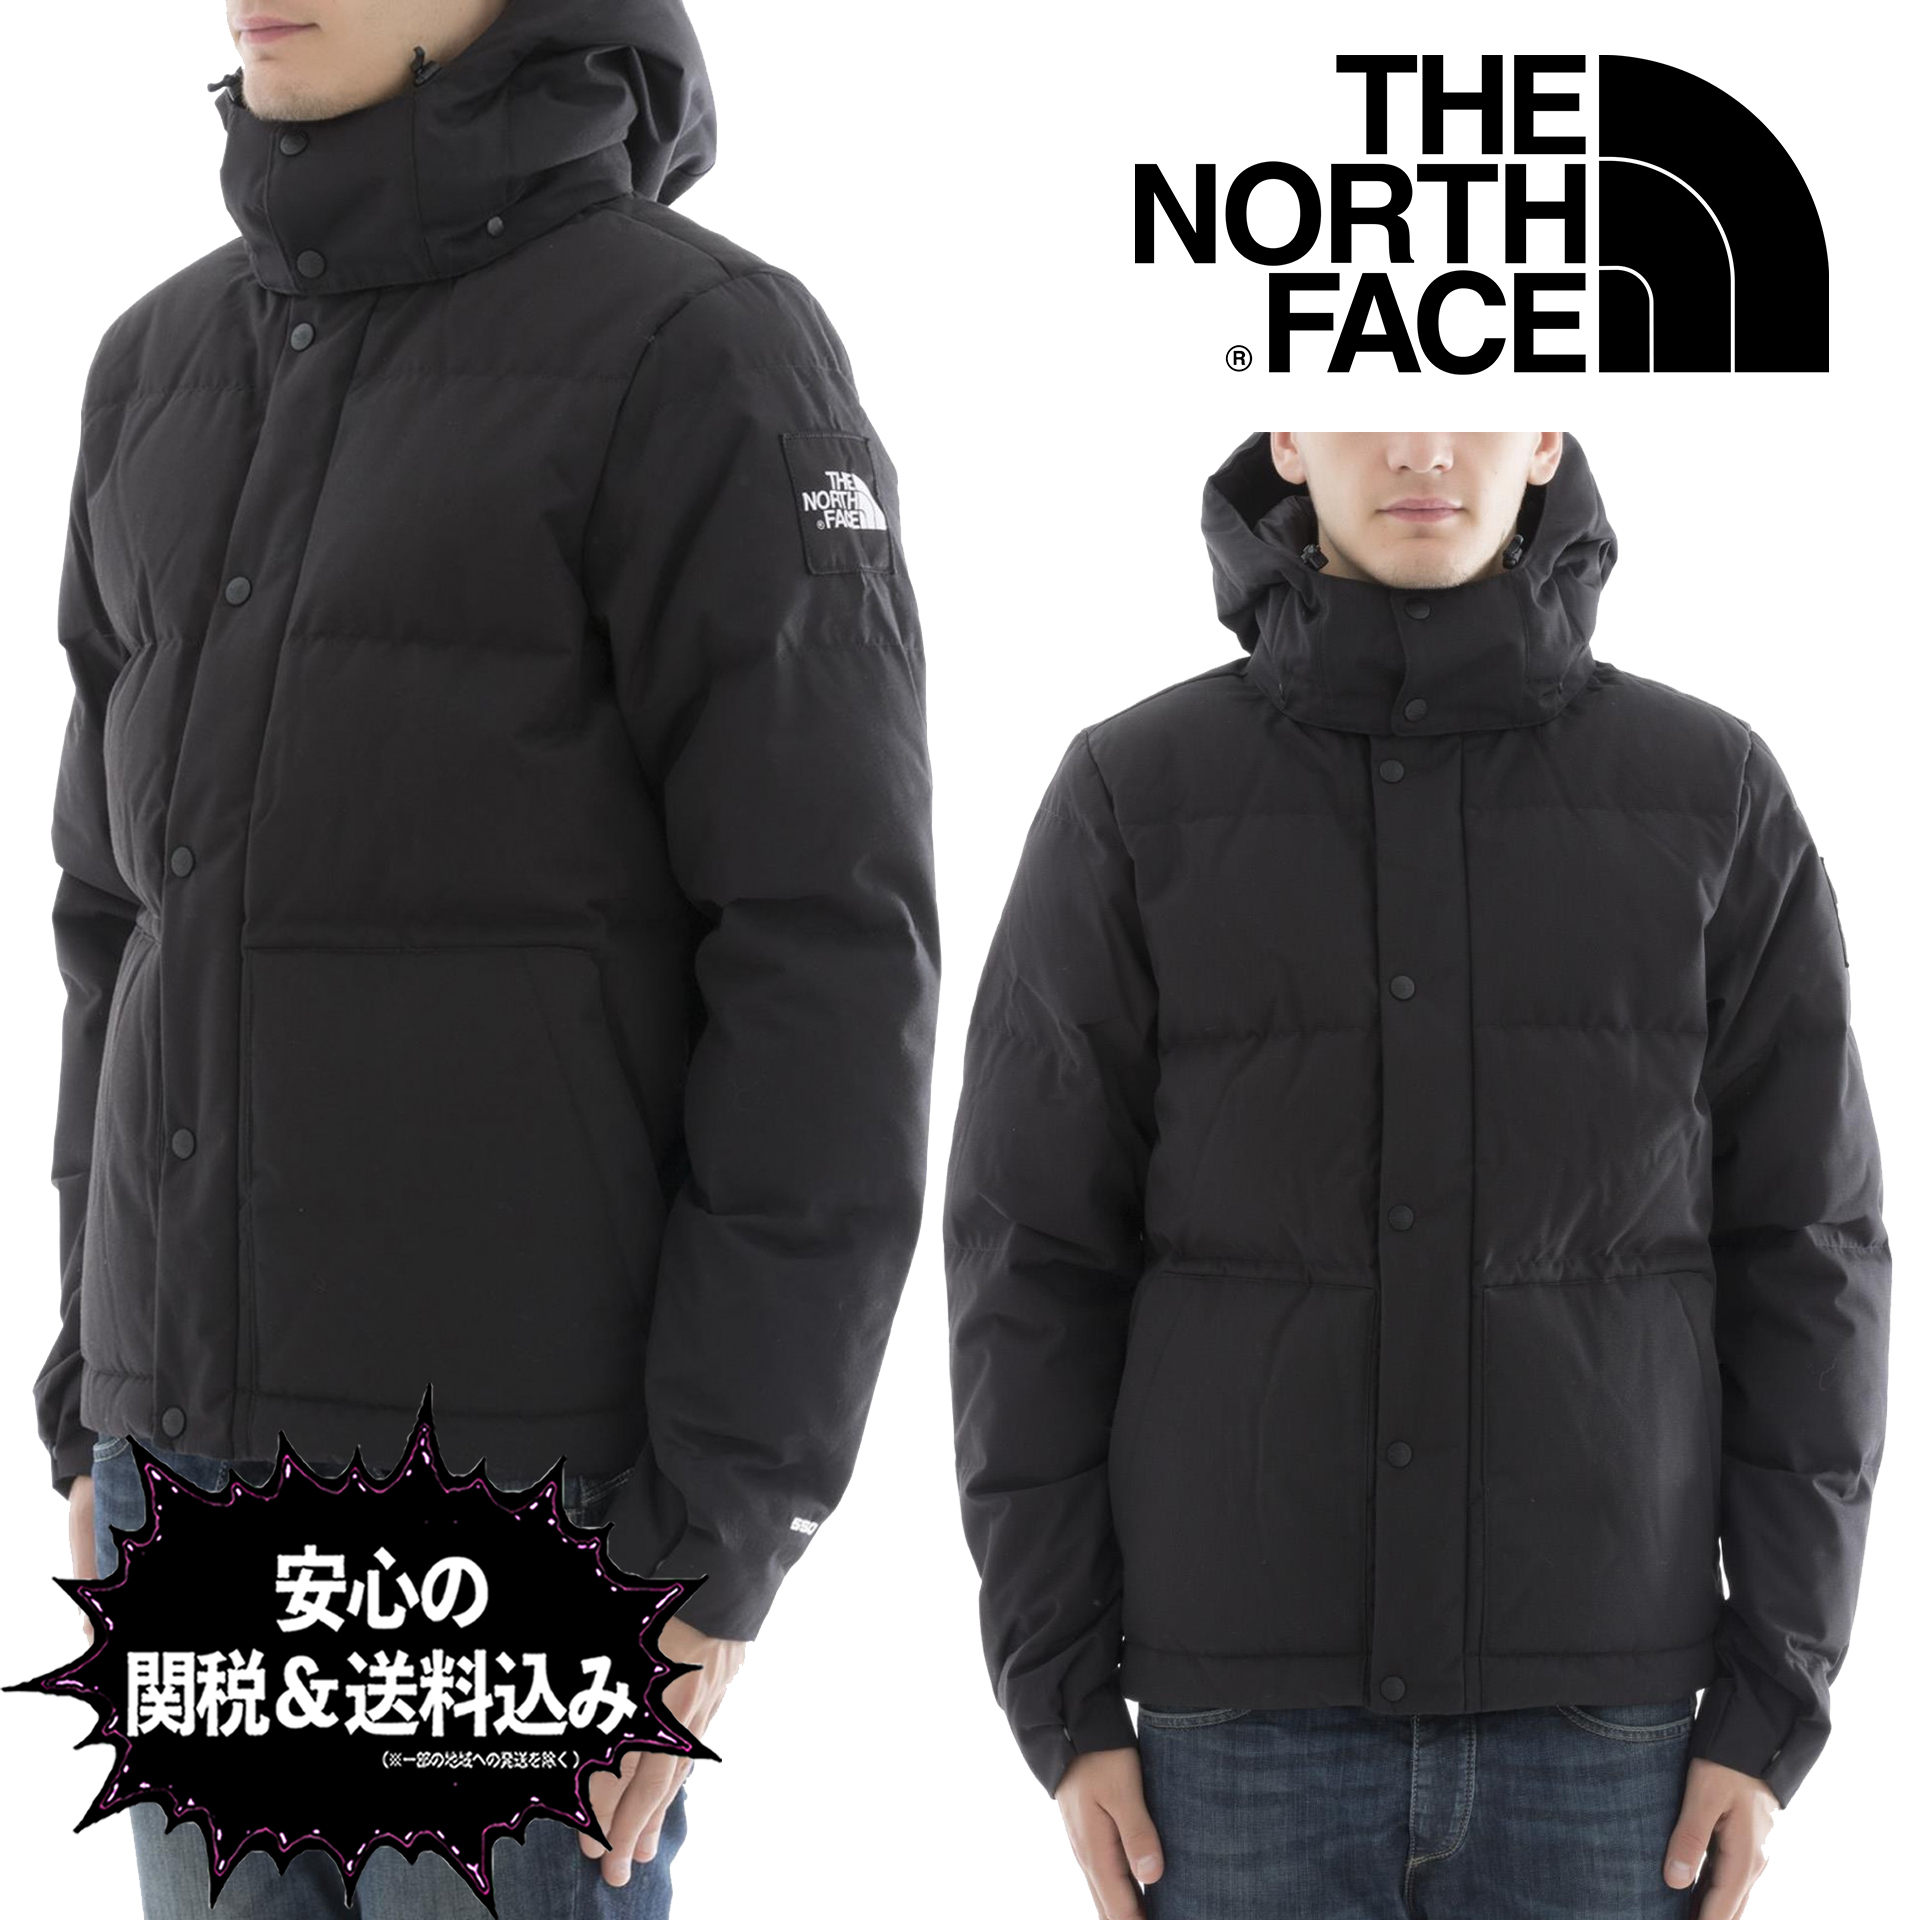 【安心の関税込】THE NORTH FACE・Black polyester down jacket